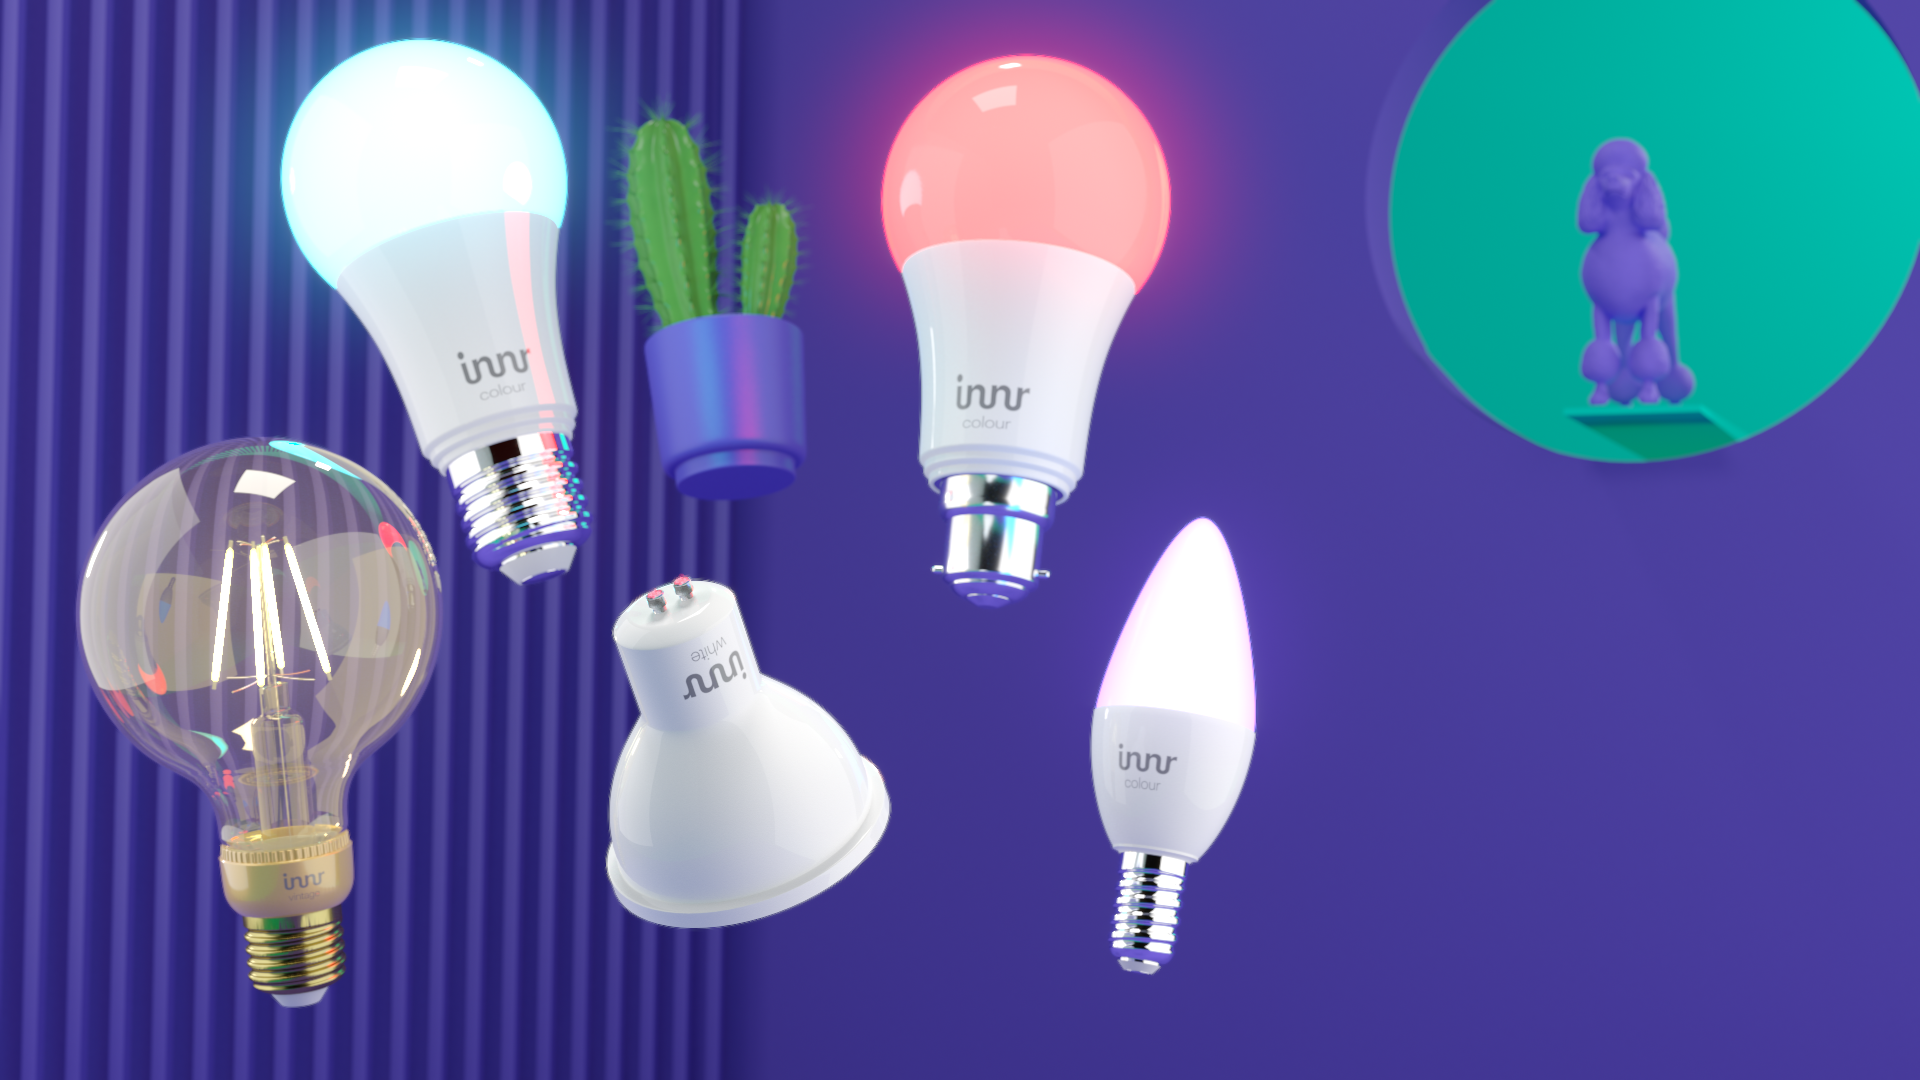 Retrofit Innr Smart bulbs